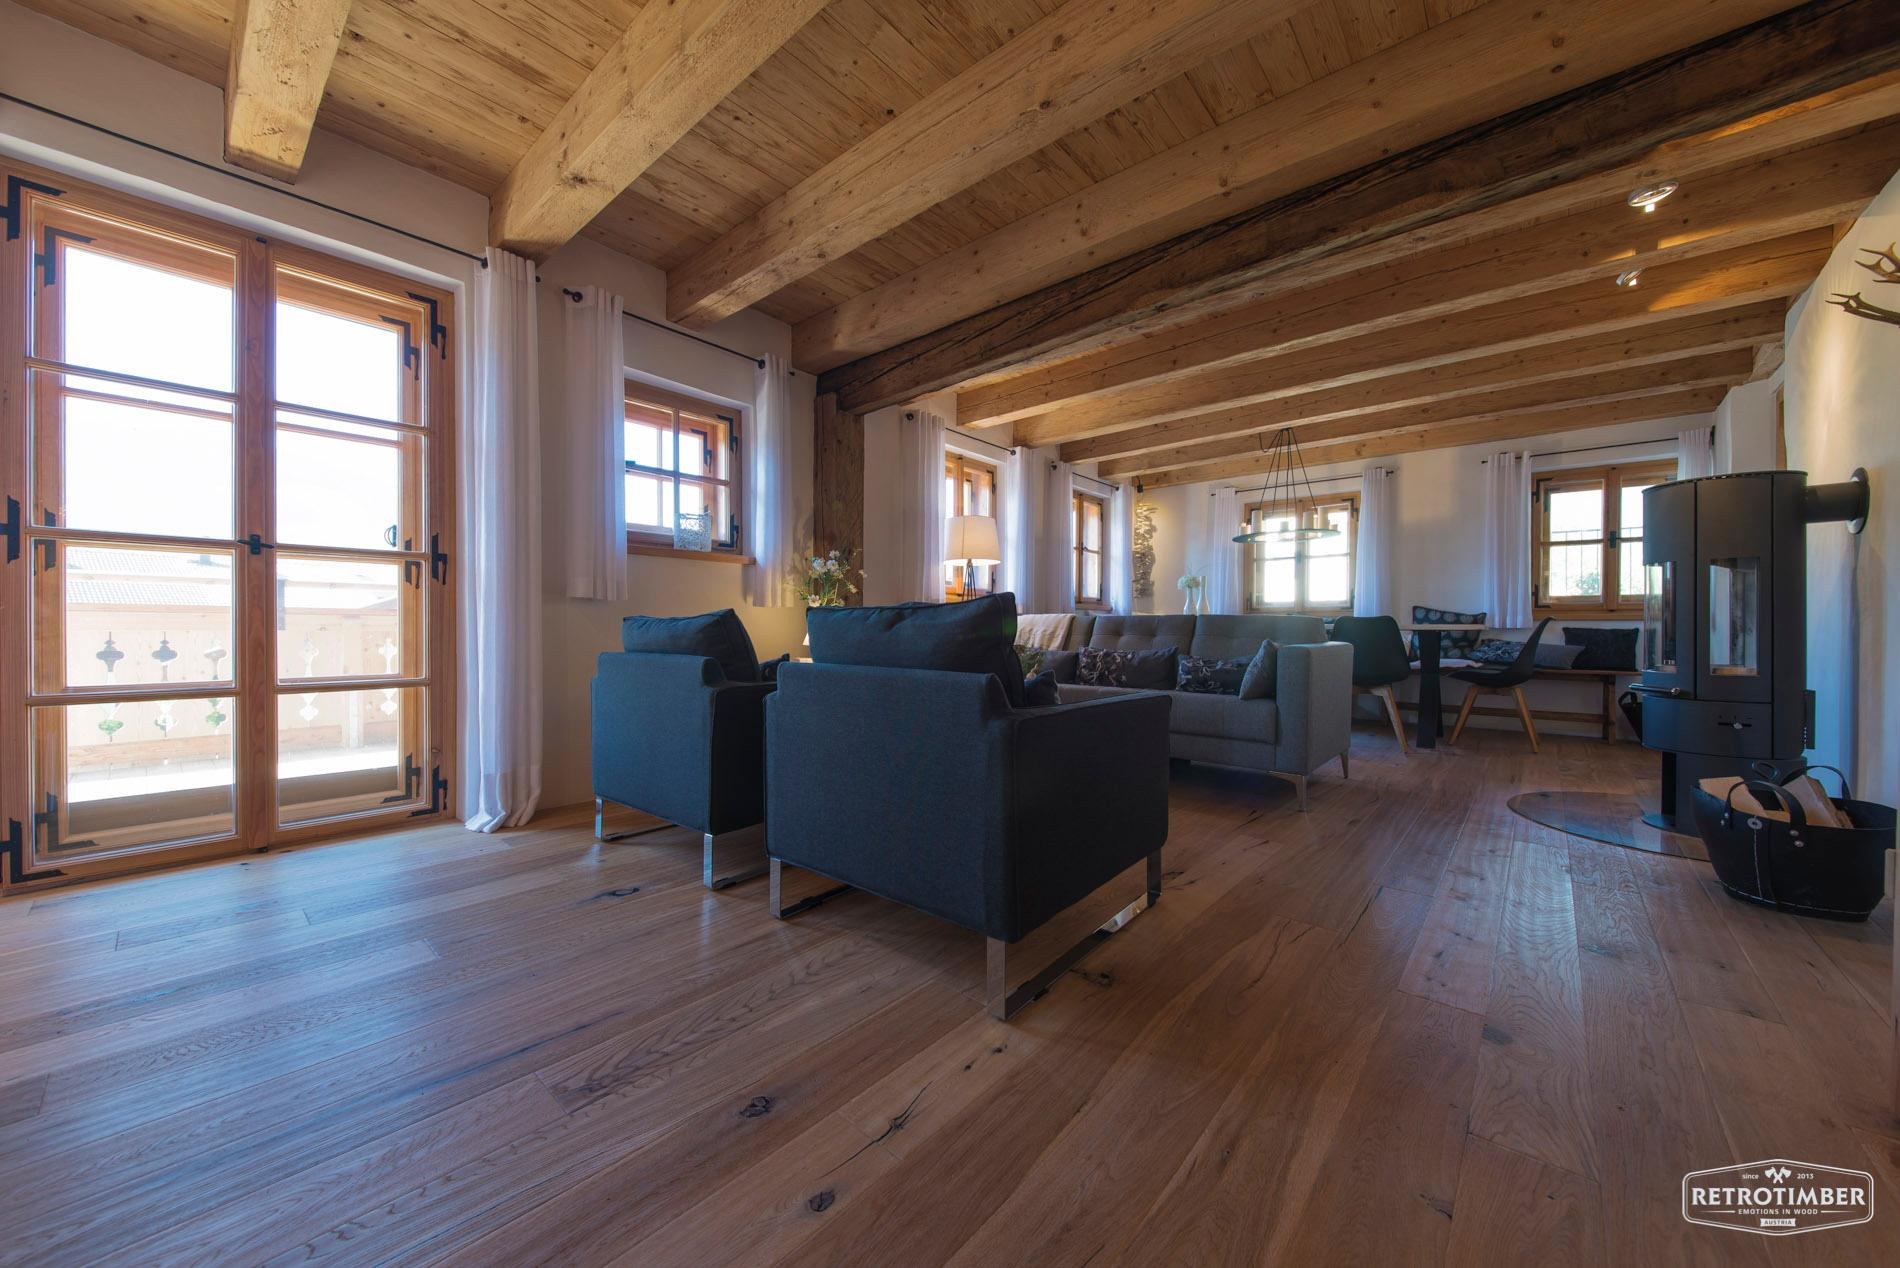 Retrotimber #holzhaus #altholz ©Franz Habisreutinger GmbH & Co. KG